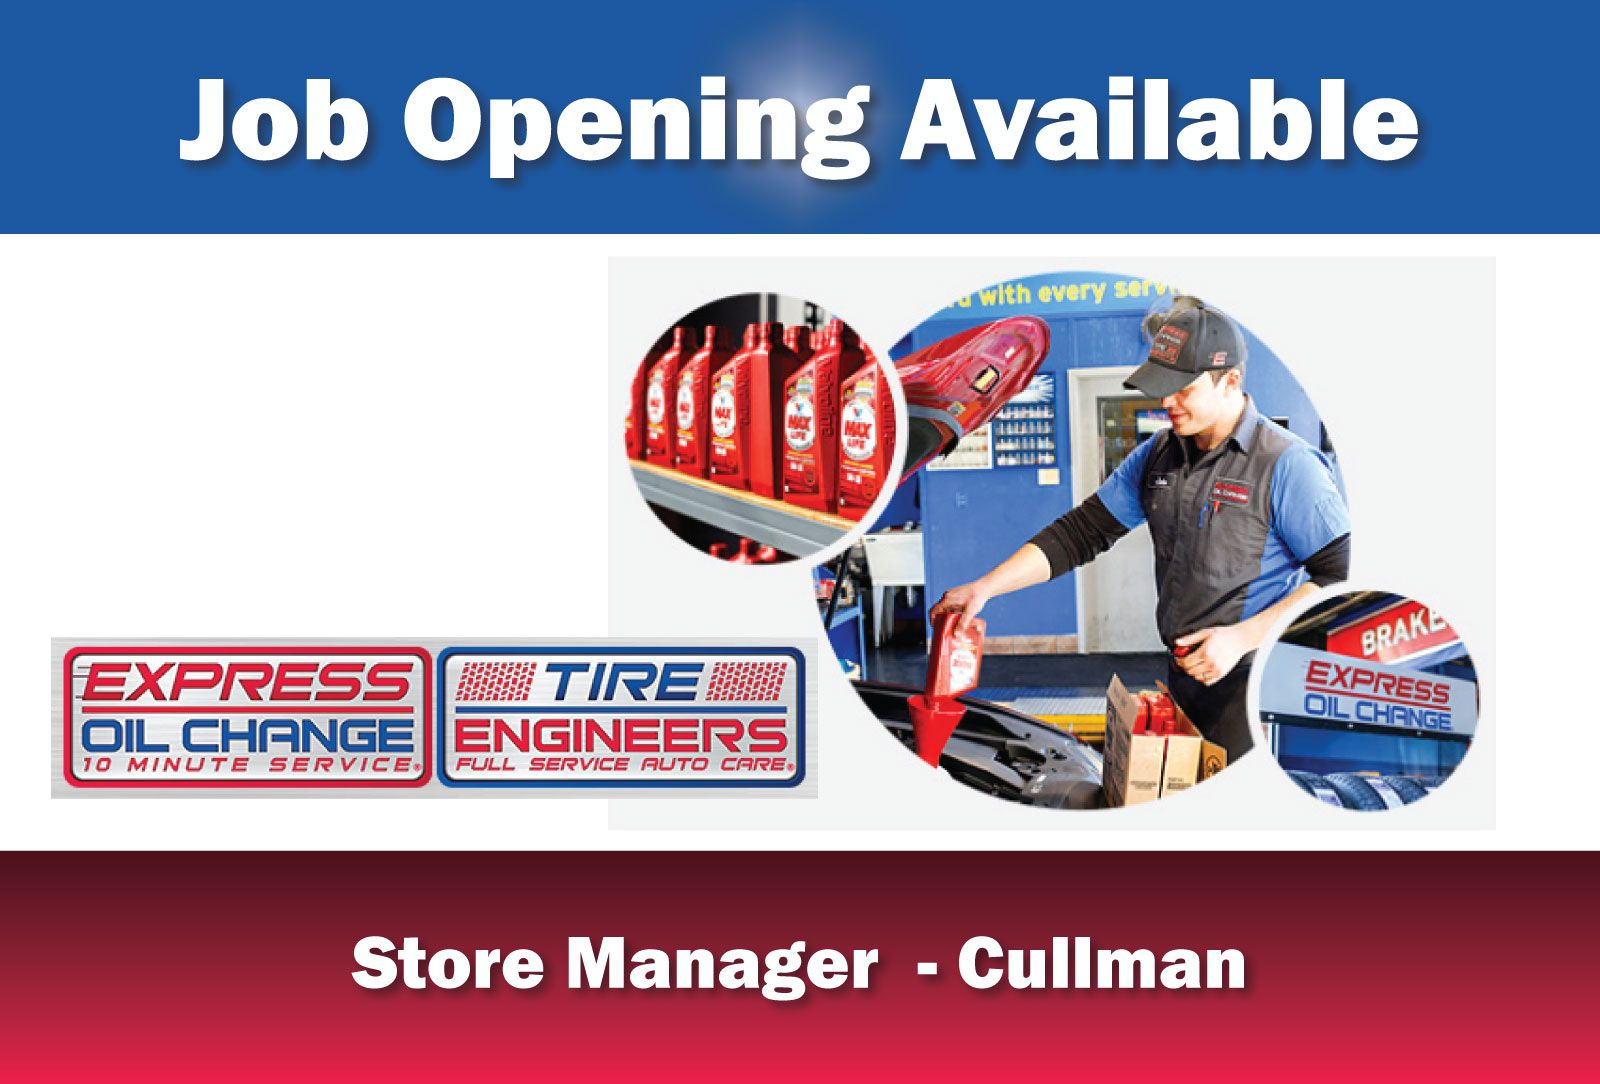 JOB OPENING AVAILABLE STORE MANAGER EMPLOYER Express Oil